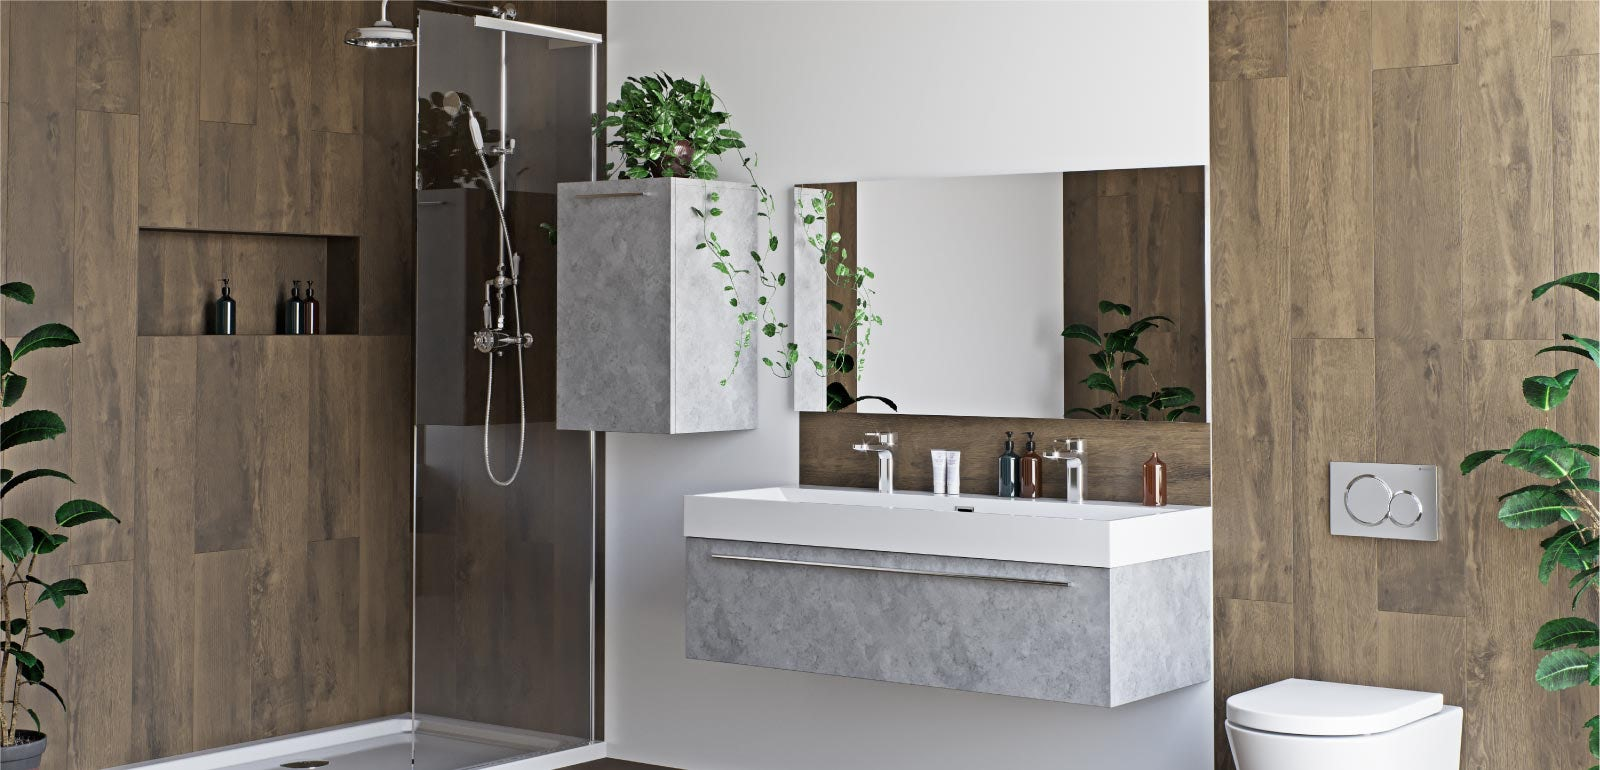 7 contemporary bathroom ideas for 2020 and beyond ...